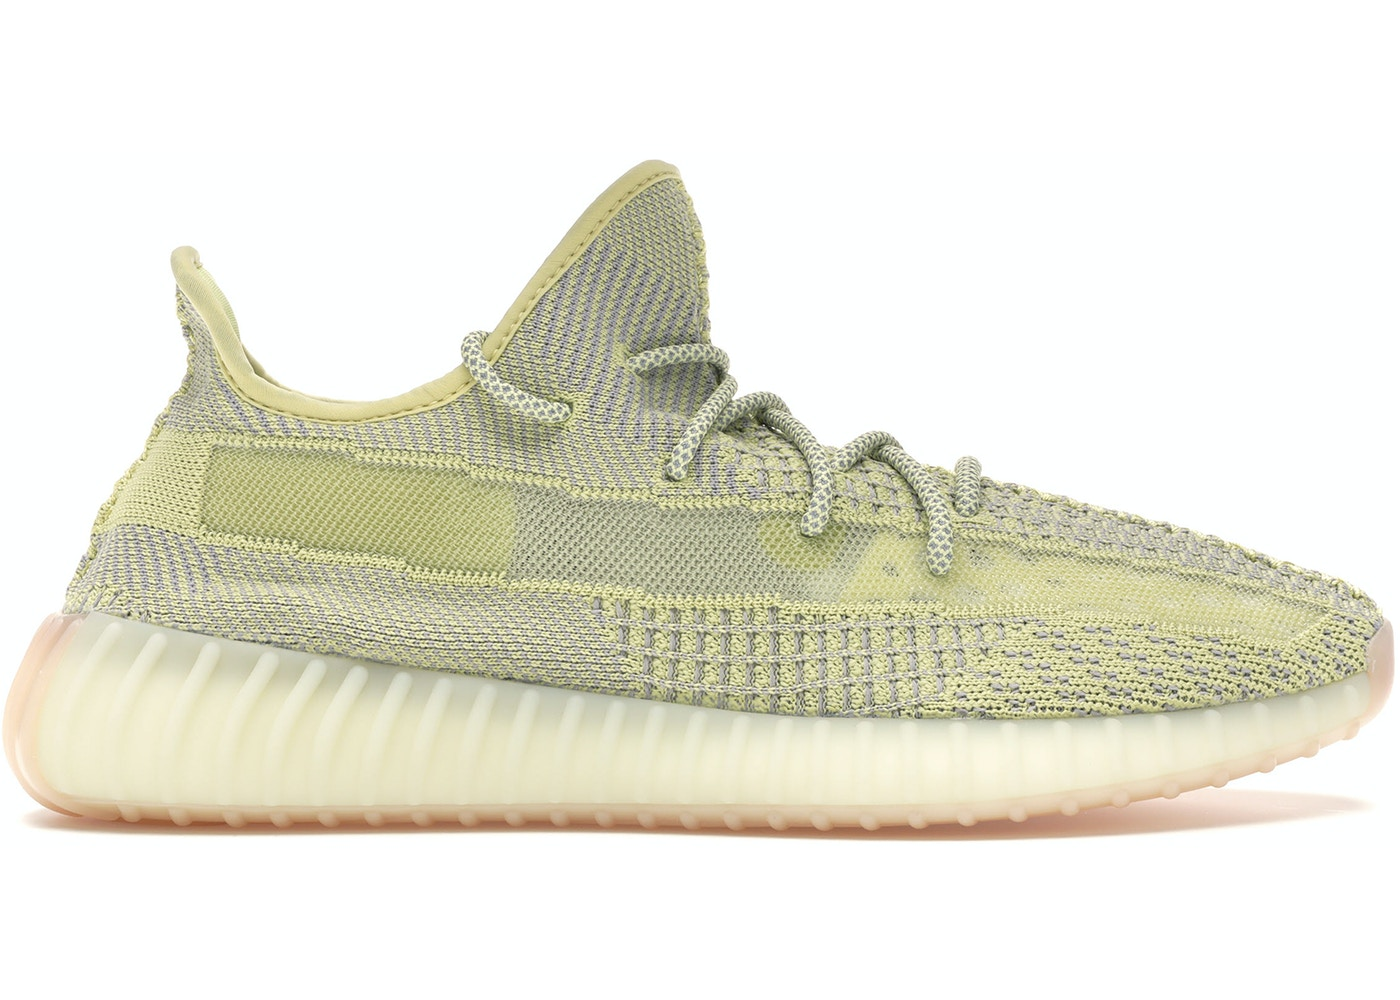 new style c7f17 6e2e8 Buy adidas Yeezy 350 v2 Shoes & Deadstock Sneakers